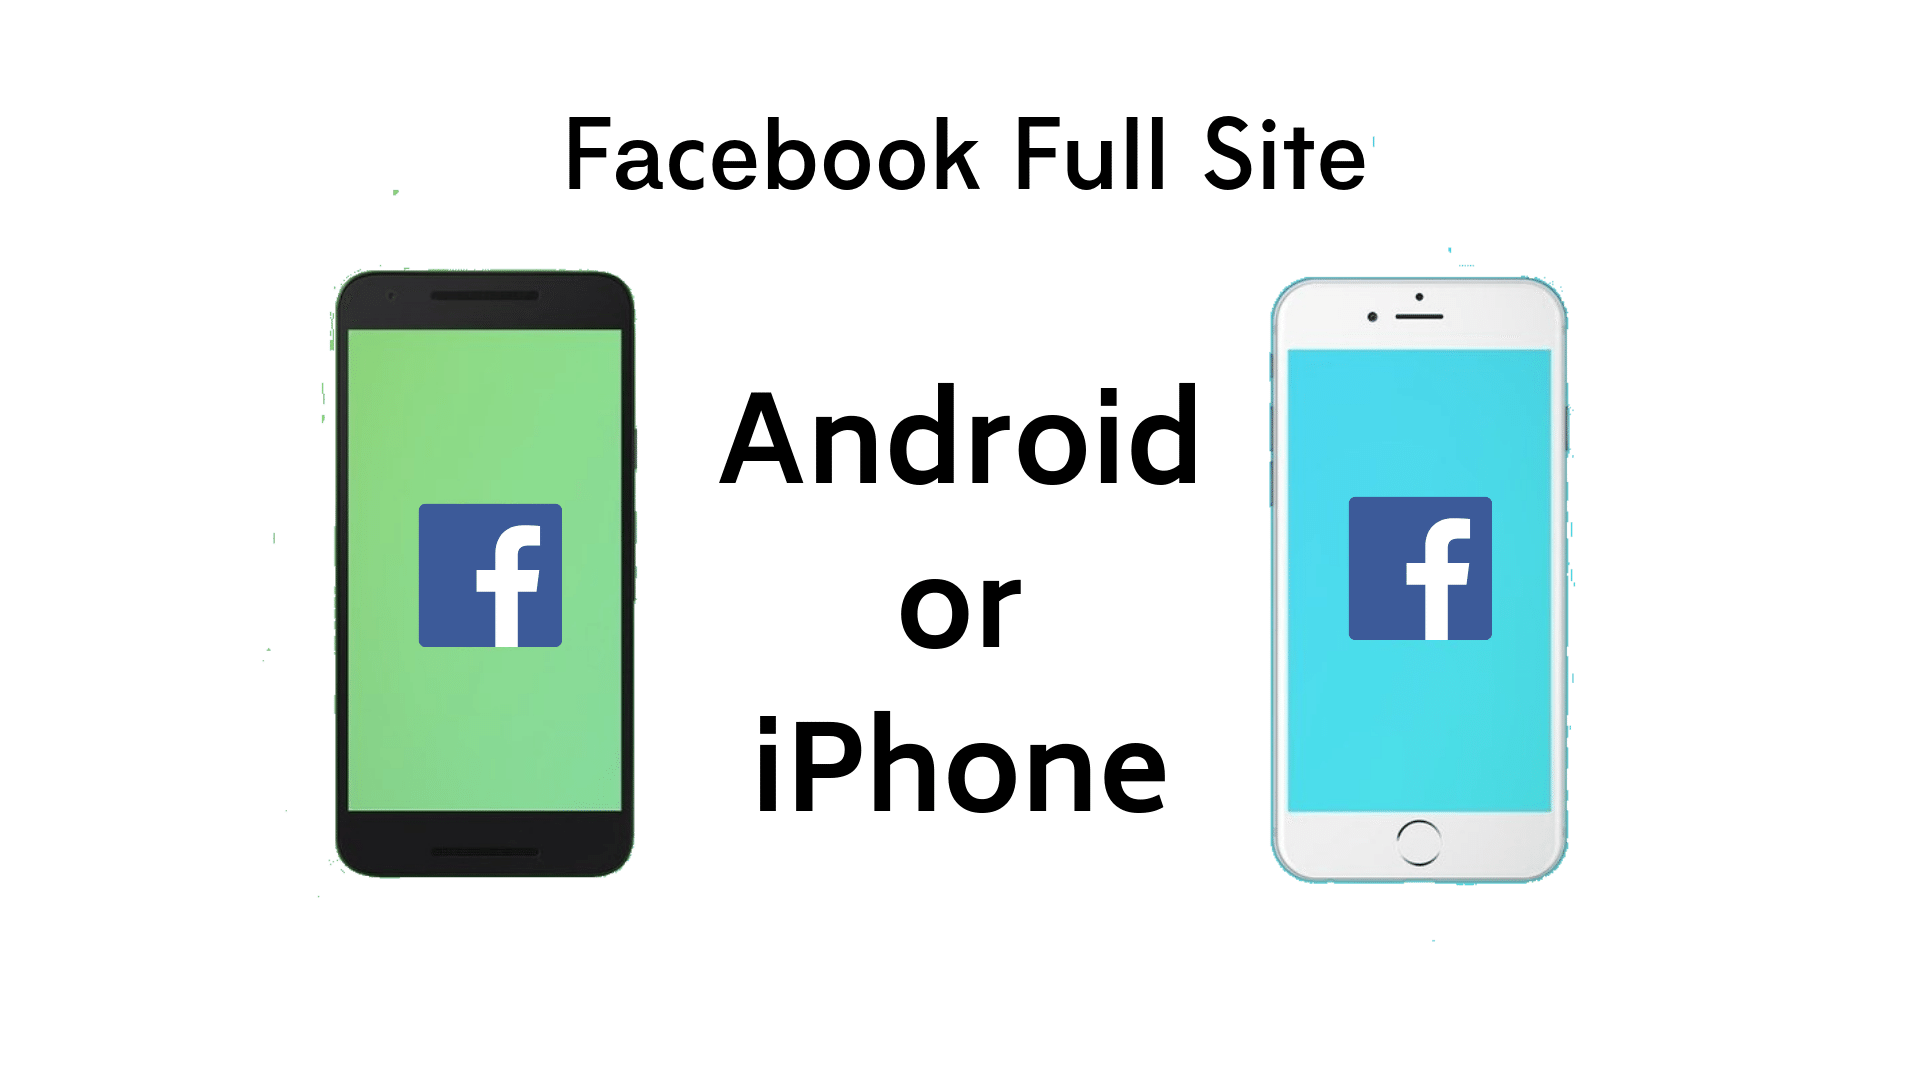 3 Ways to Access Facebook Full Site [Android or iPhone]